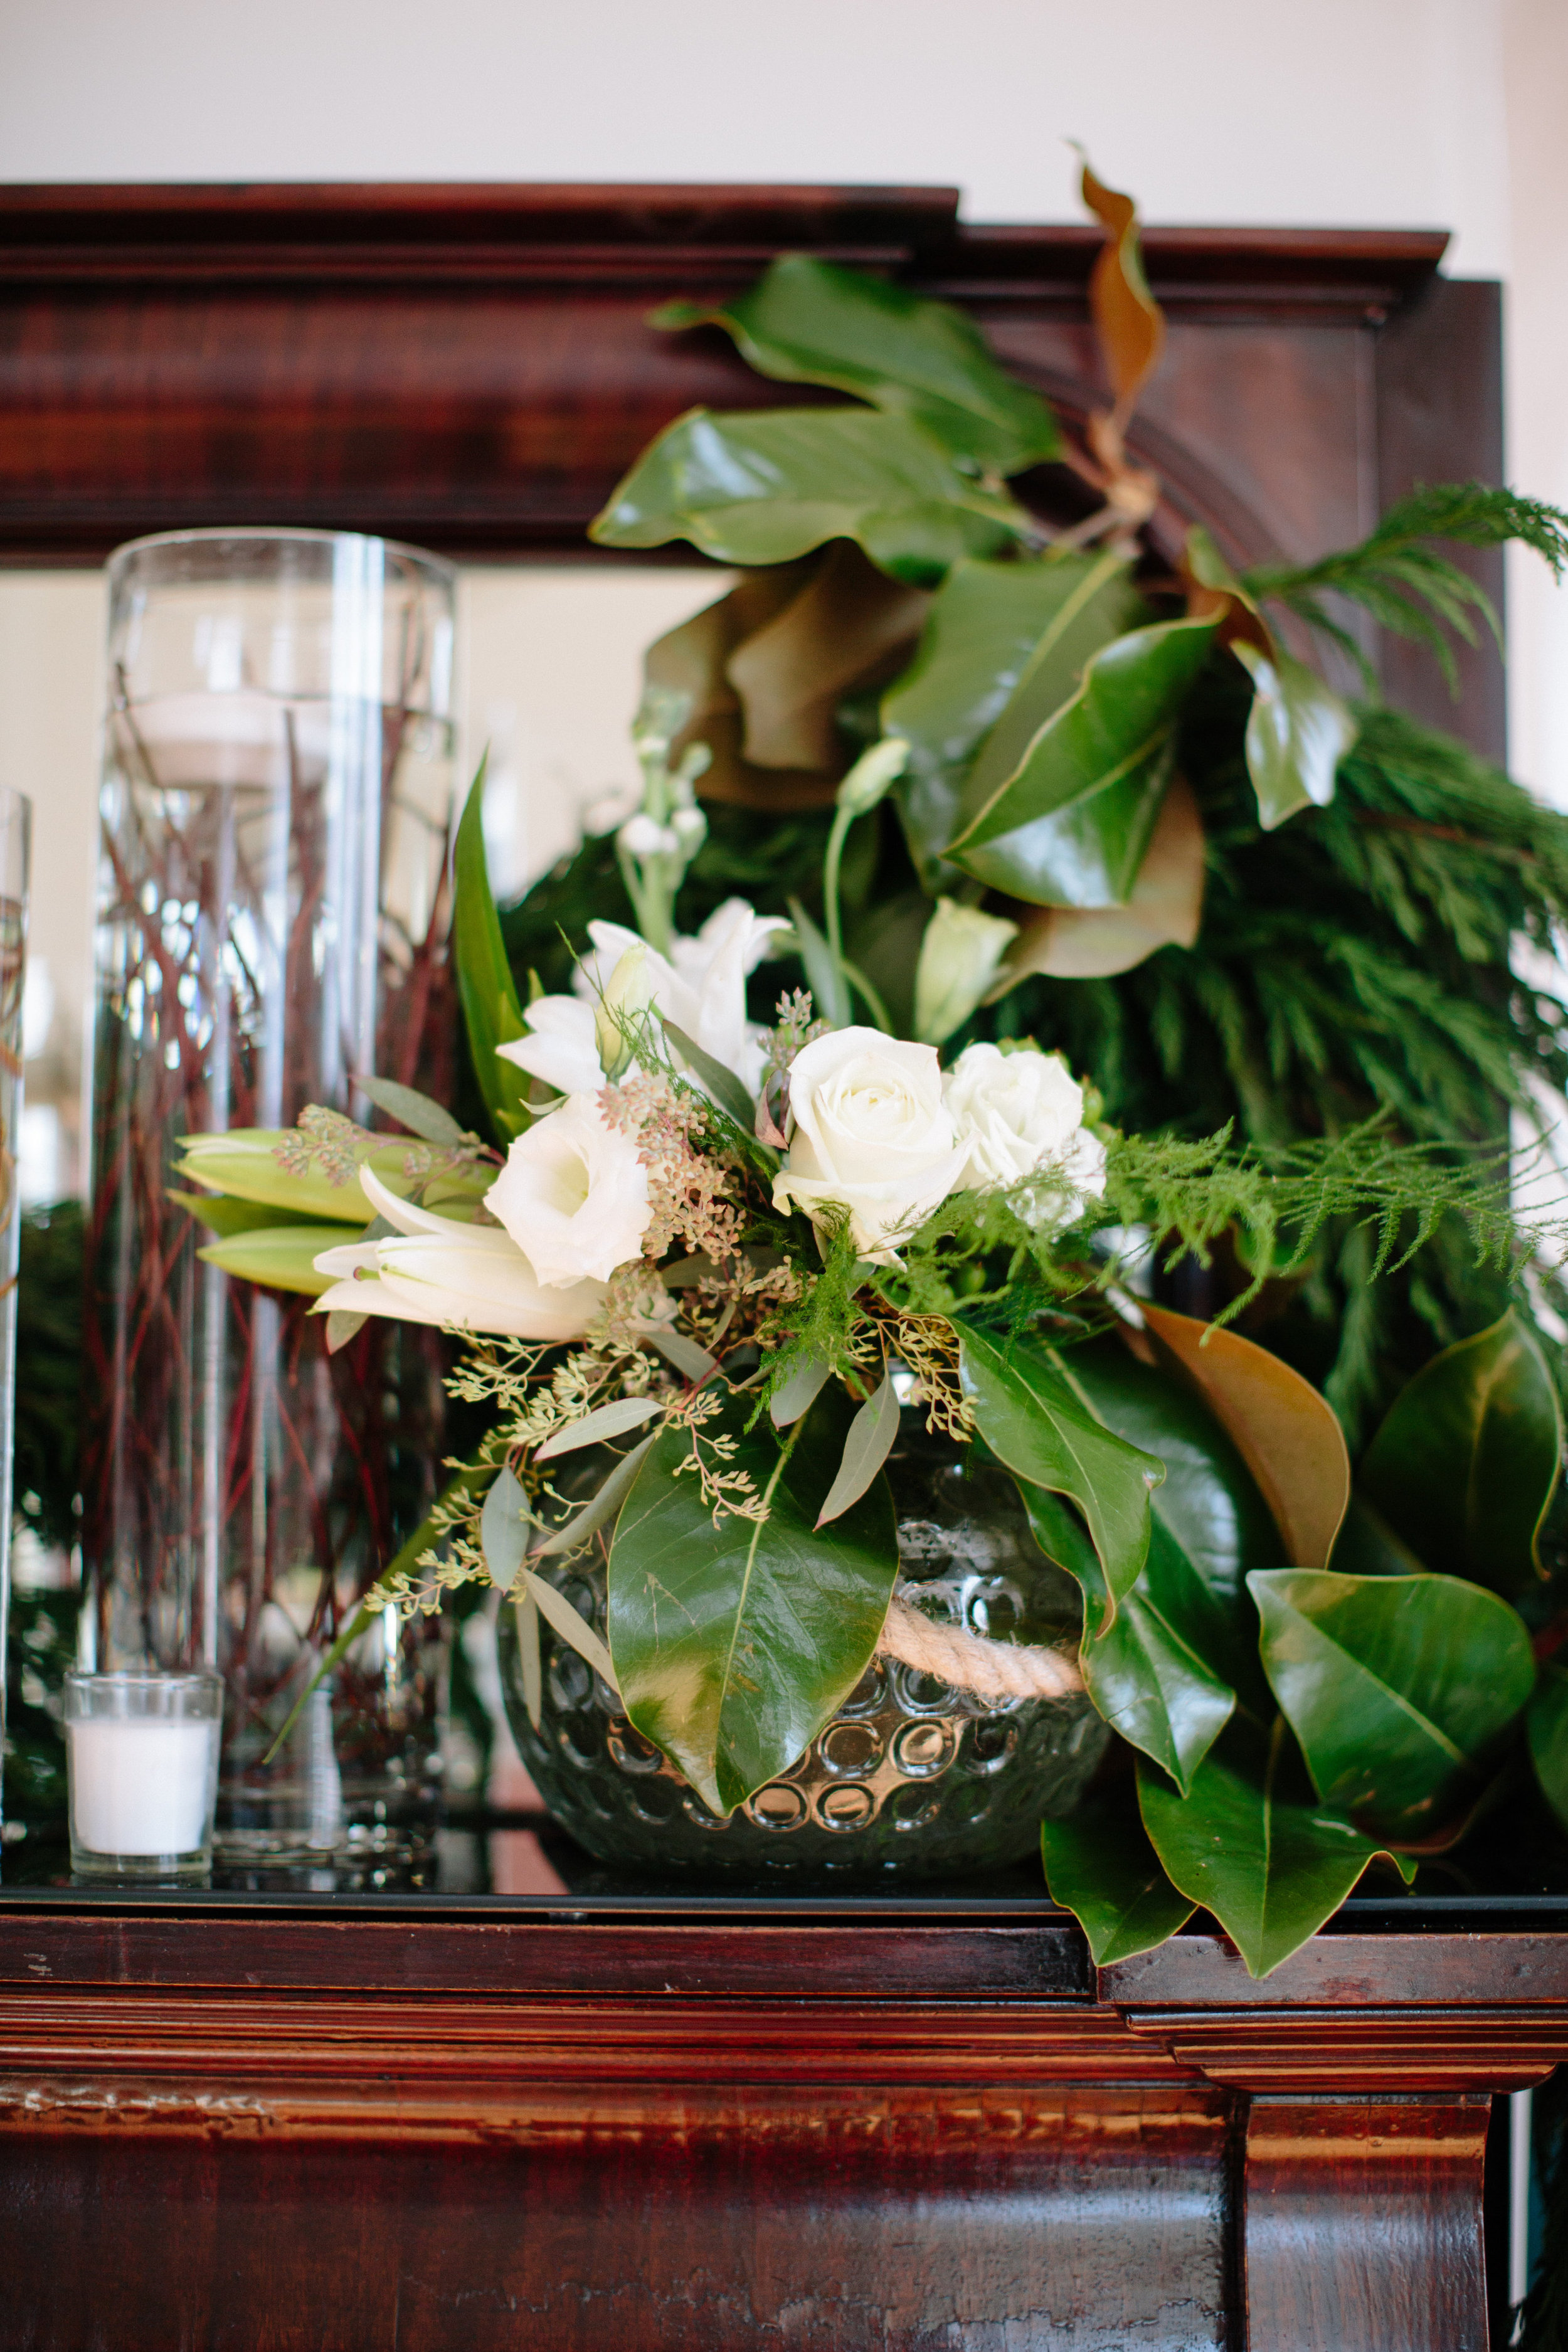 280a9-weddingmantlefloralsgreeneryraleighweddingweddingmantlefloralsgreeneryraleighwedding.jpg